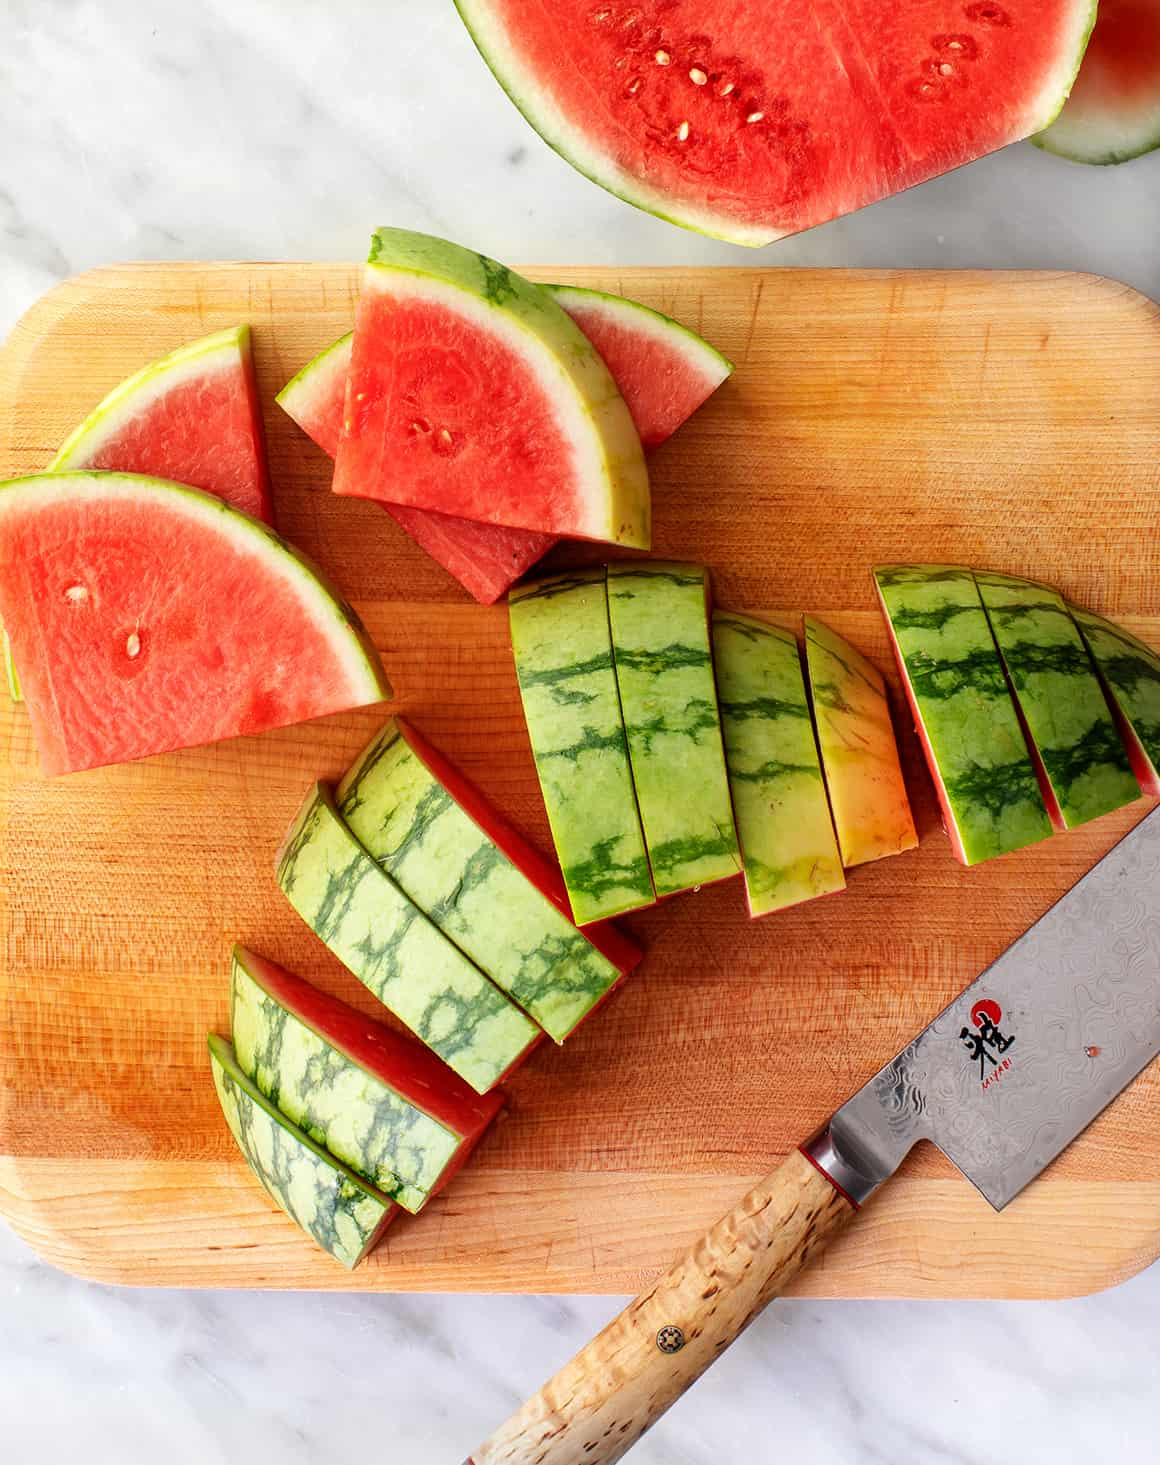 Best way to cut a watermelon - wedges on a cutting board with knife